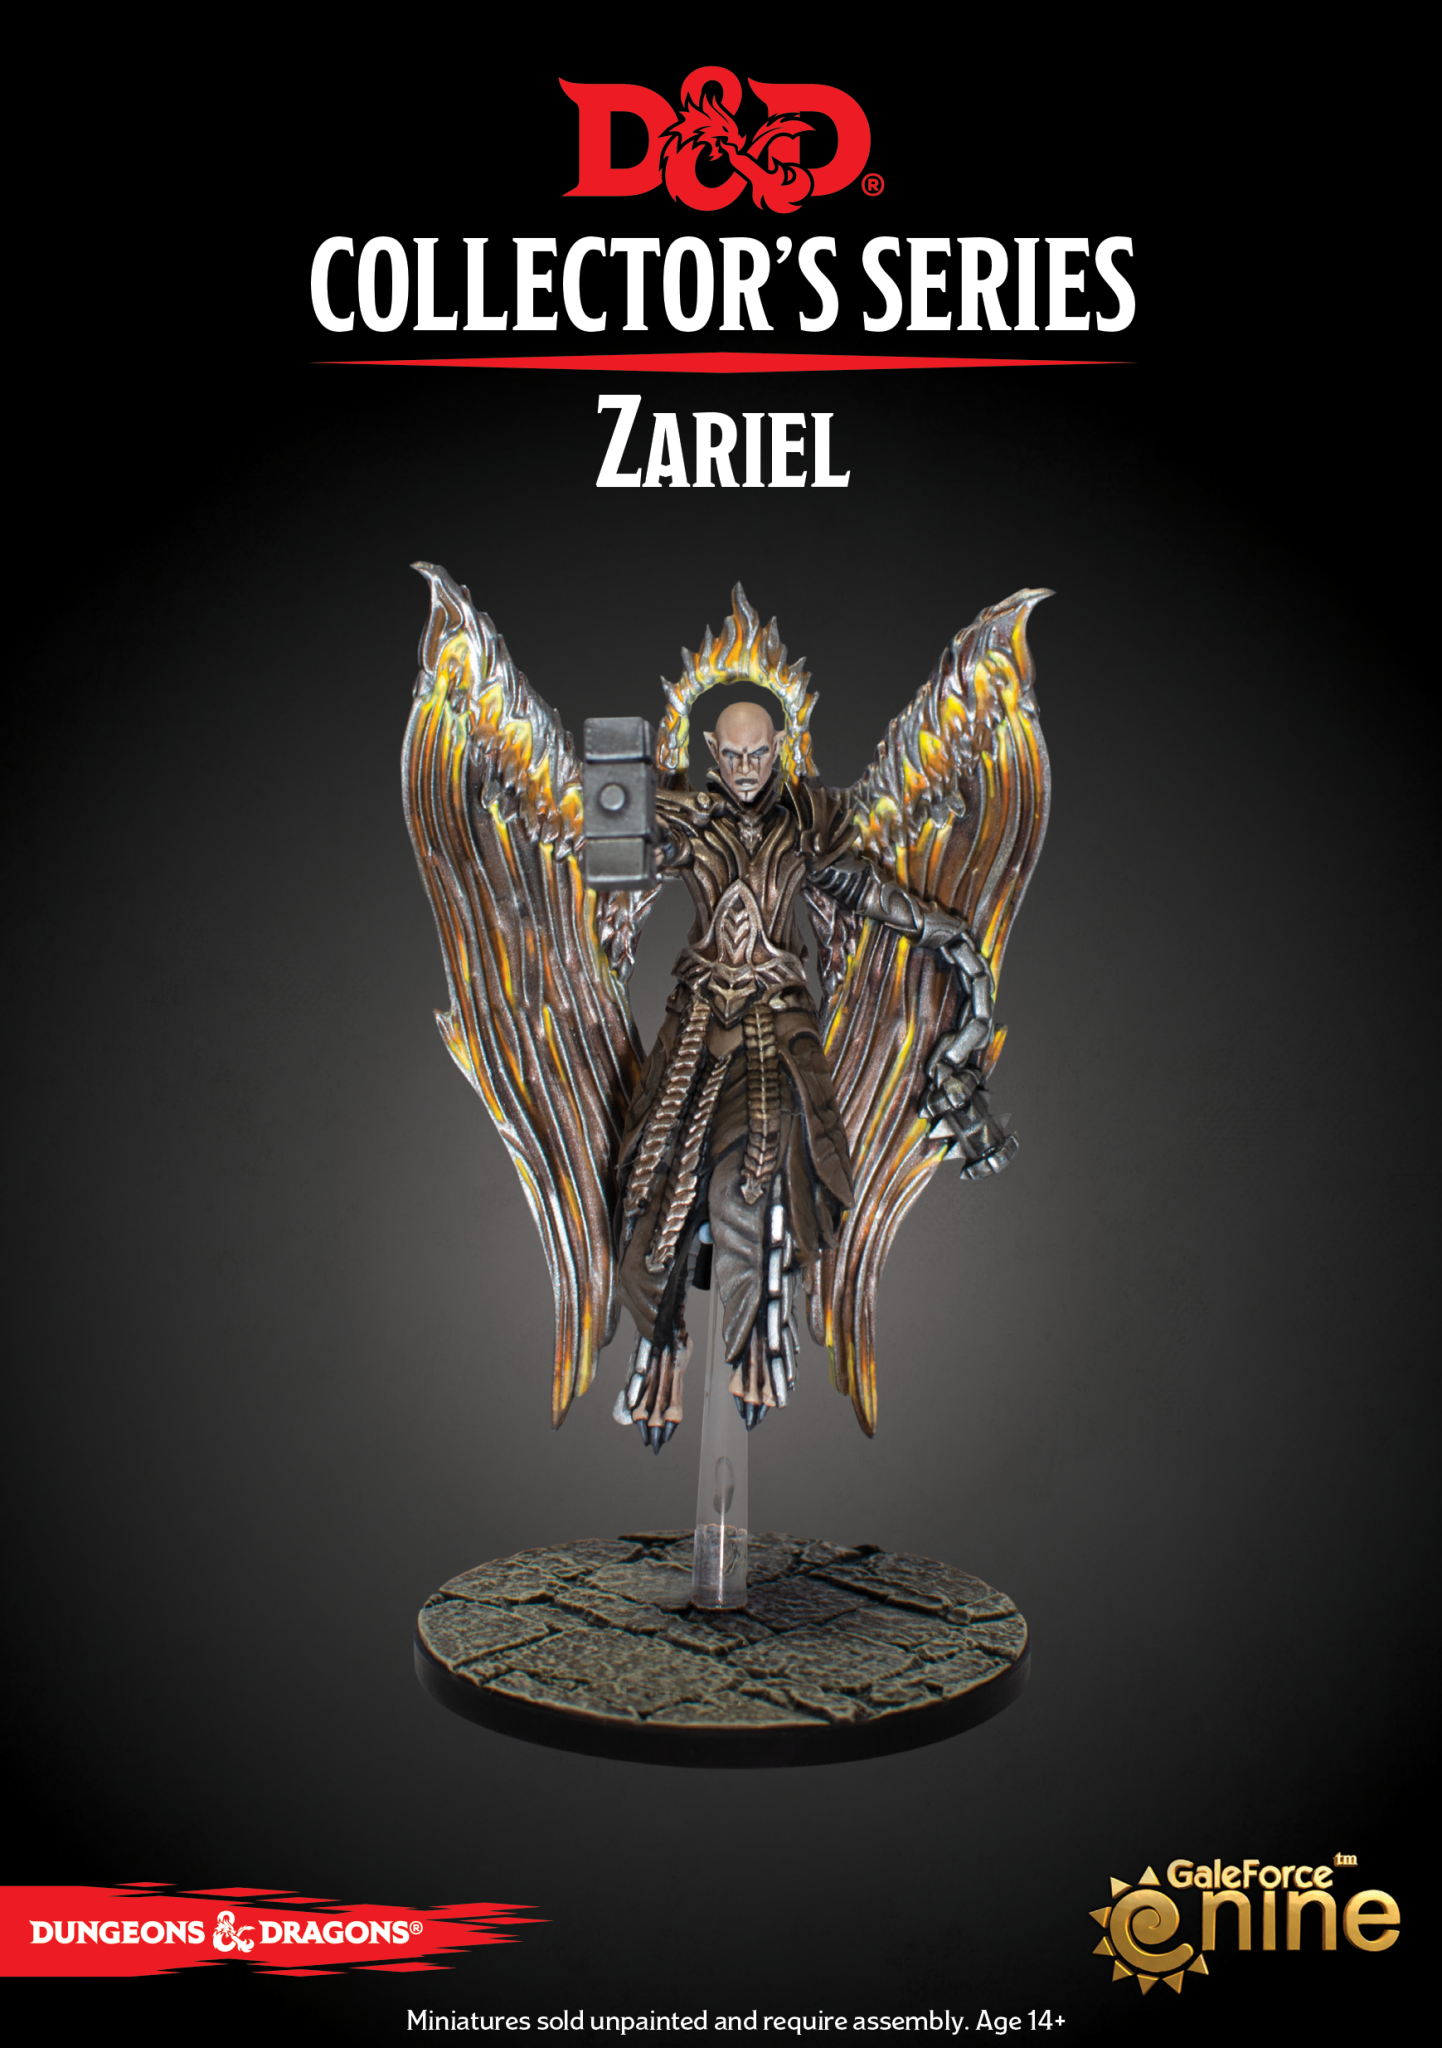 D&D Collector's Series - Zariel